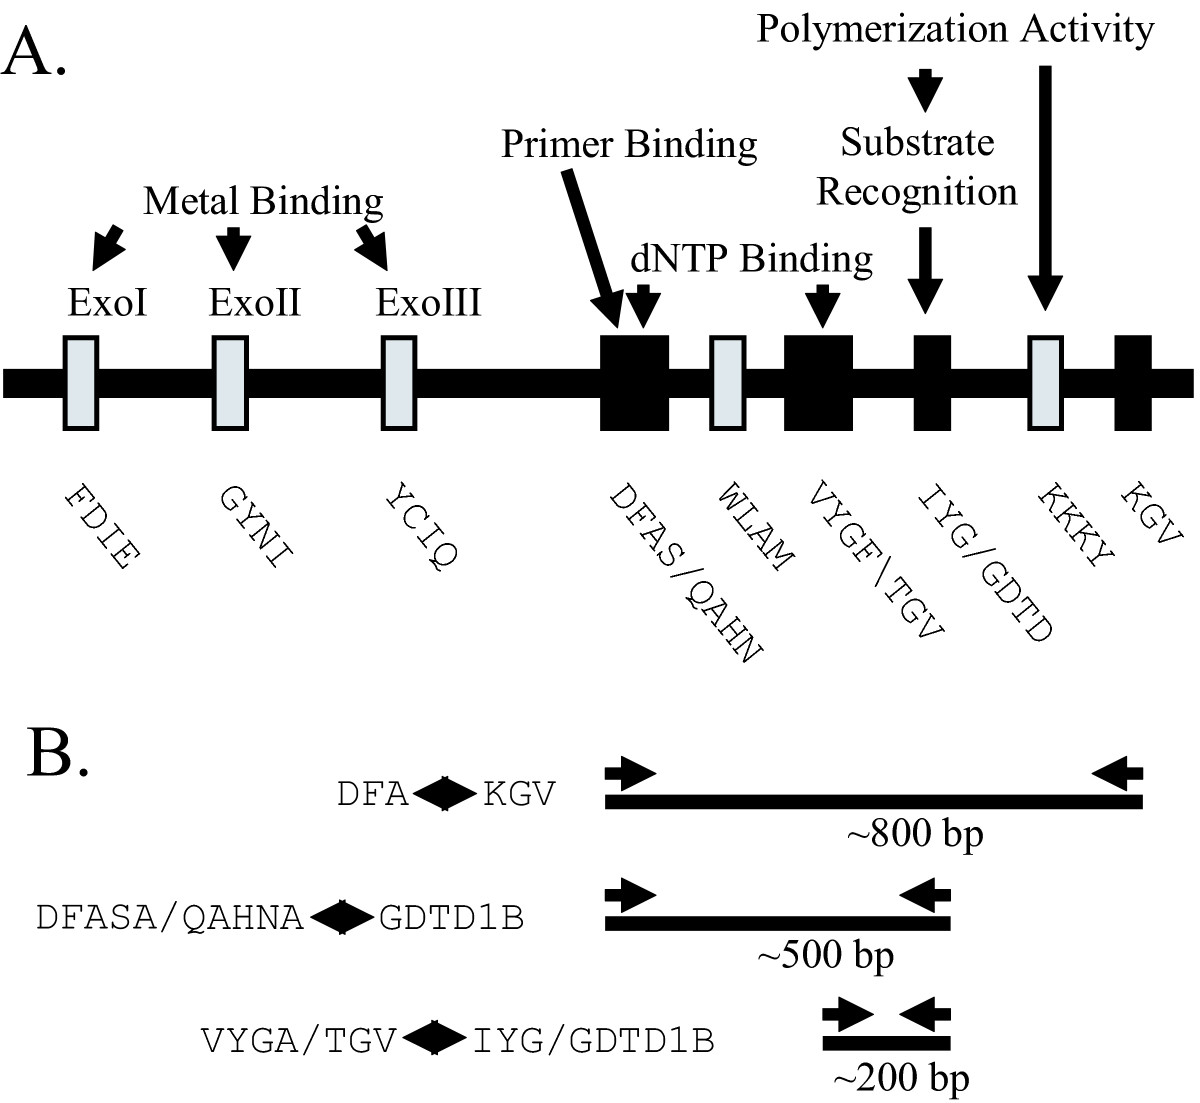 http://static-content.springer.com/image/art%3A10.1186%2F1743-422X-2-20/MediaObjects/12985_2005_Article_35_Fig2_HTML.jpg